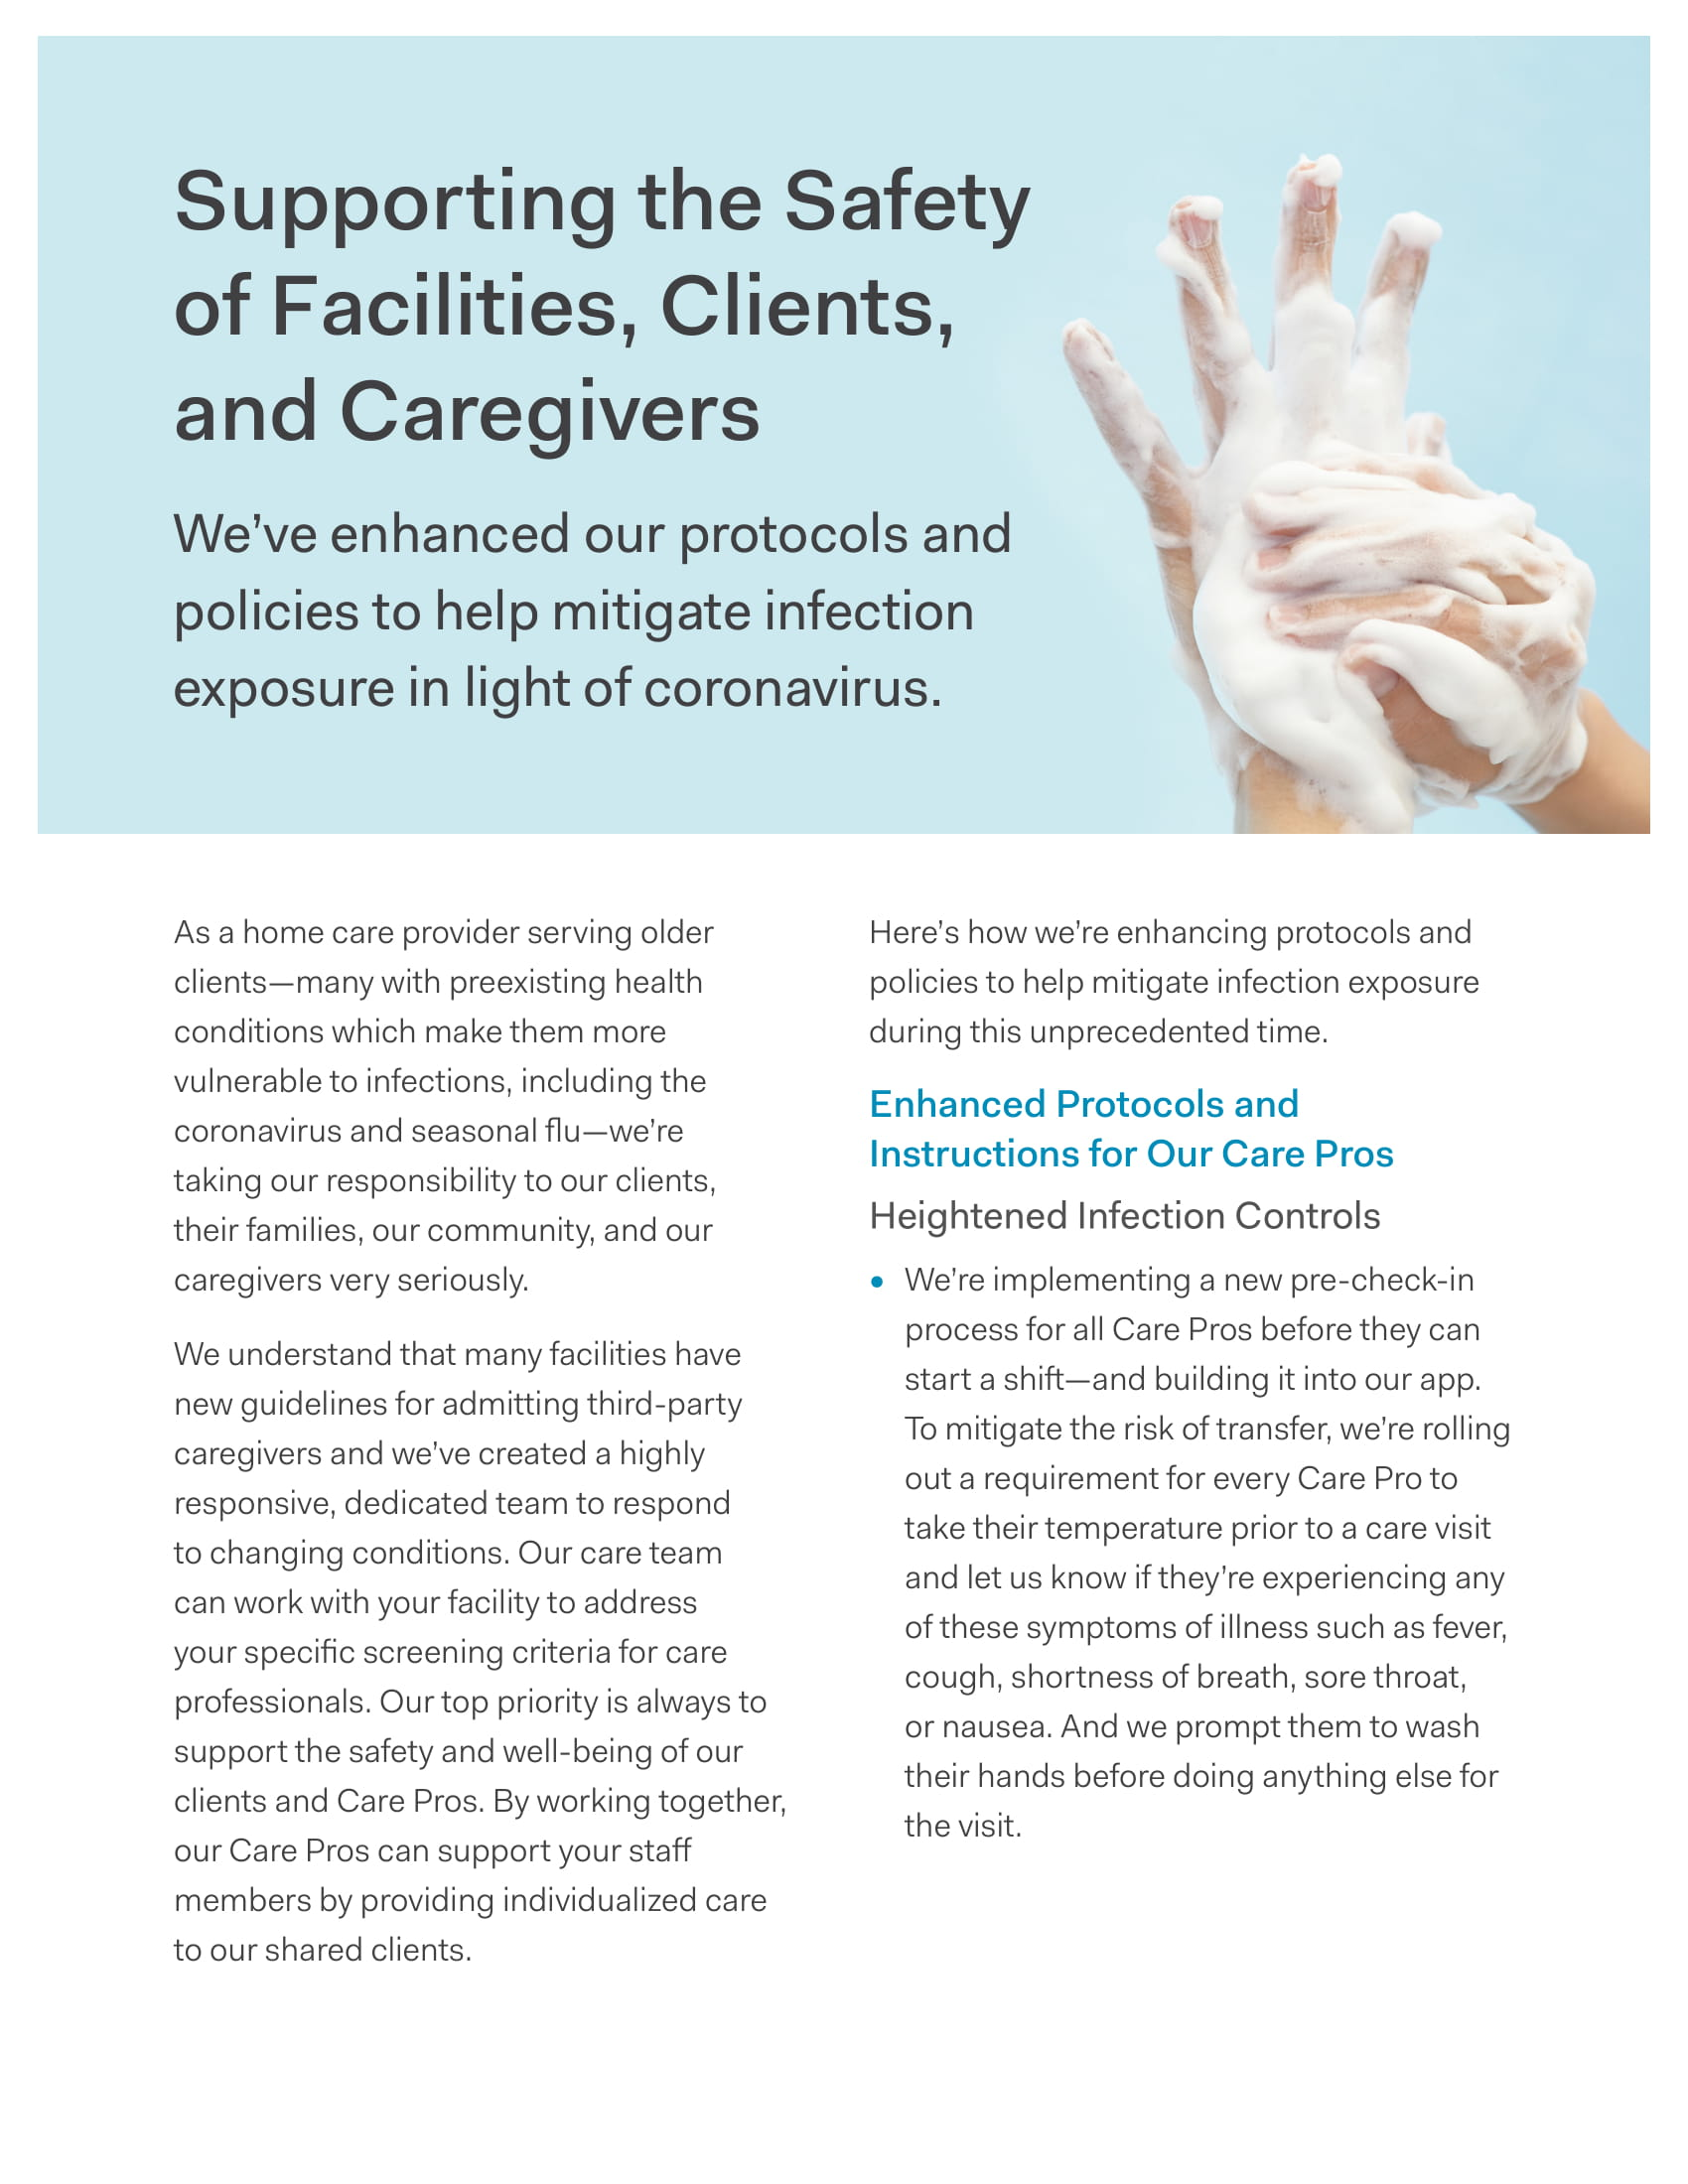 Supporting the Safety of Facilities, Clients, and Caregivers